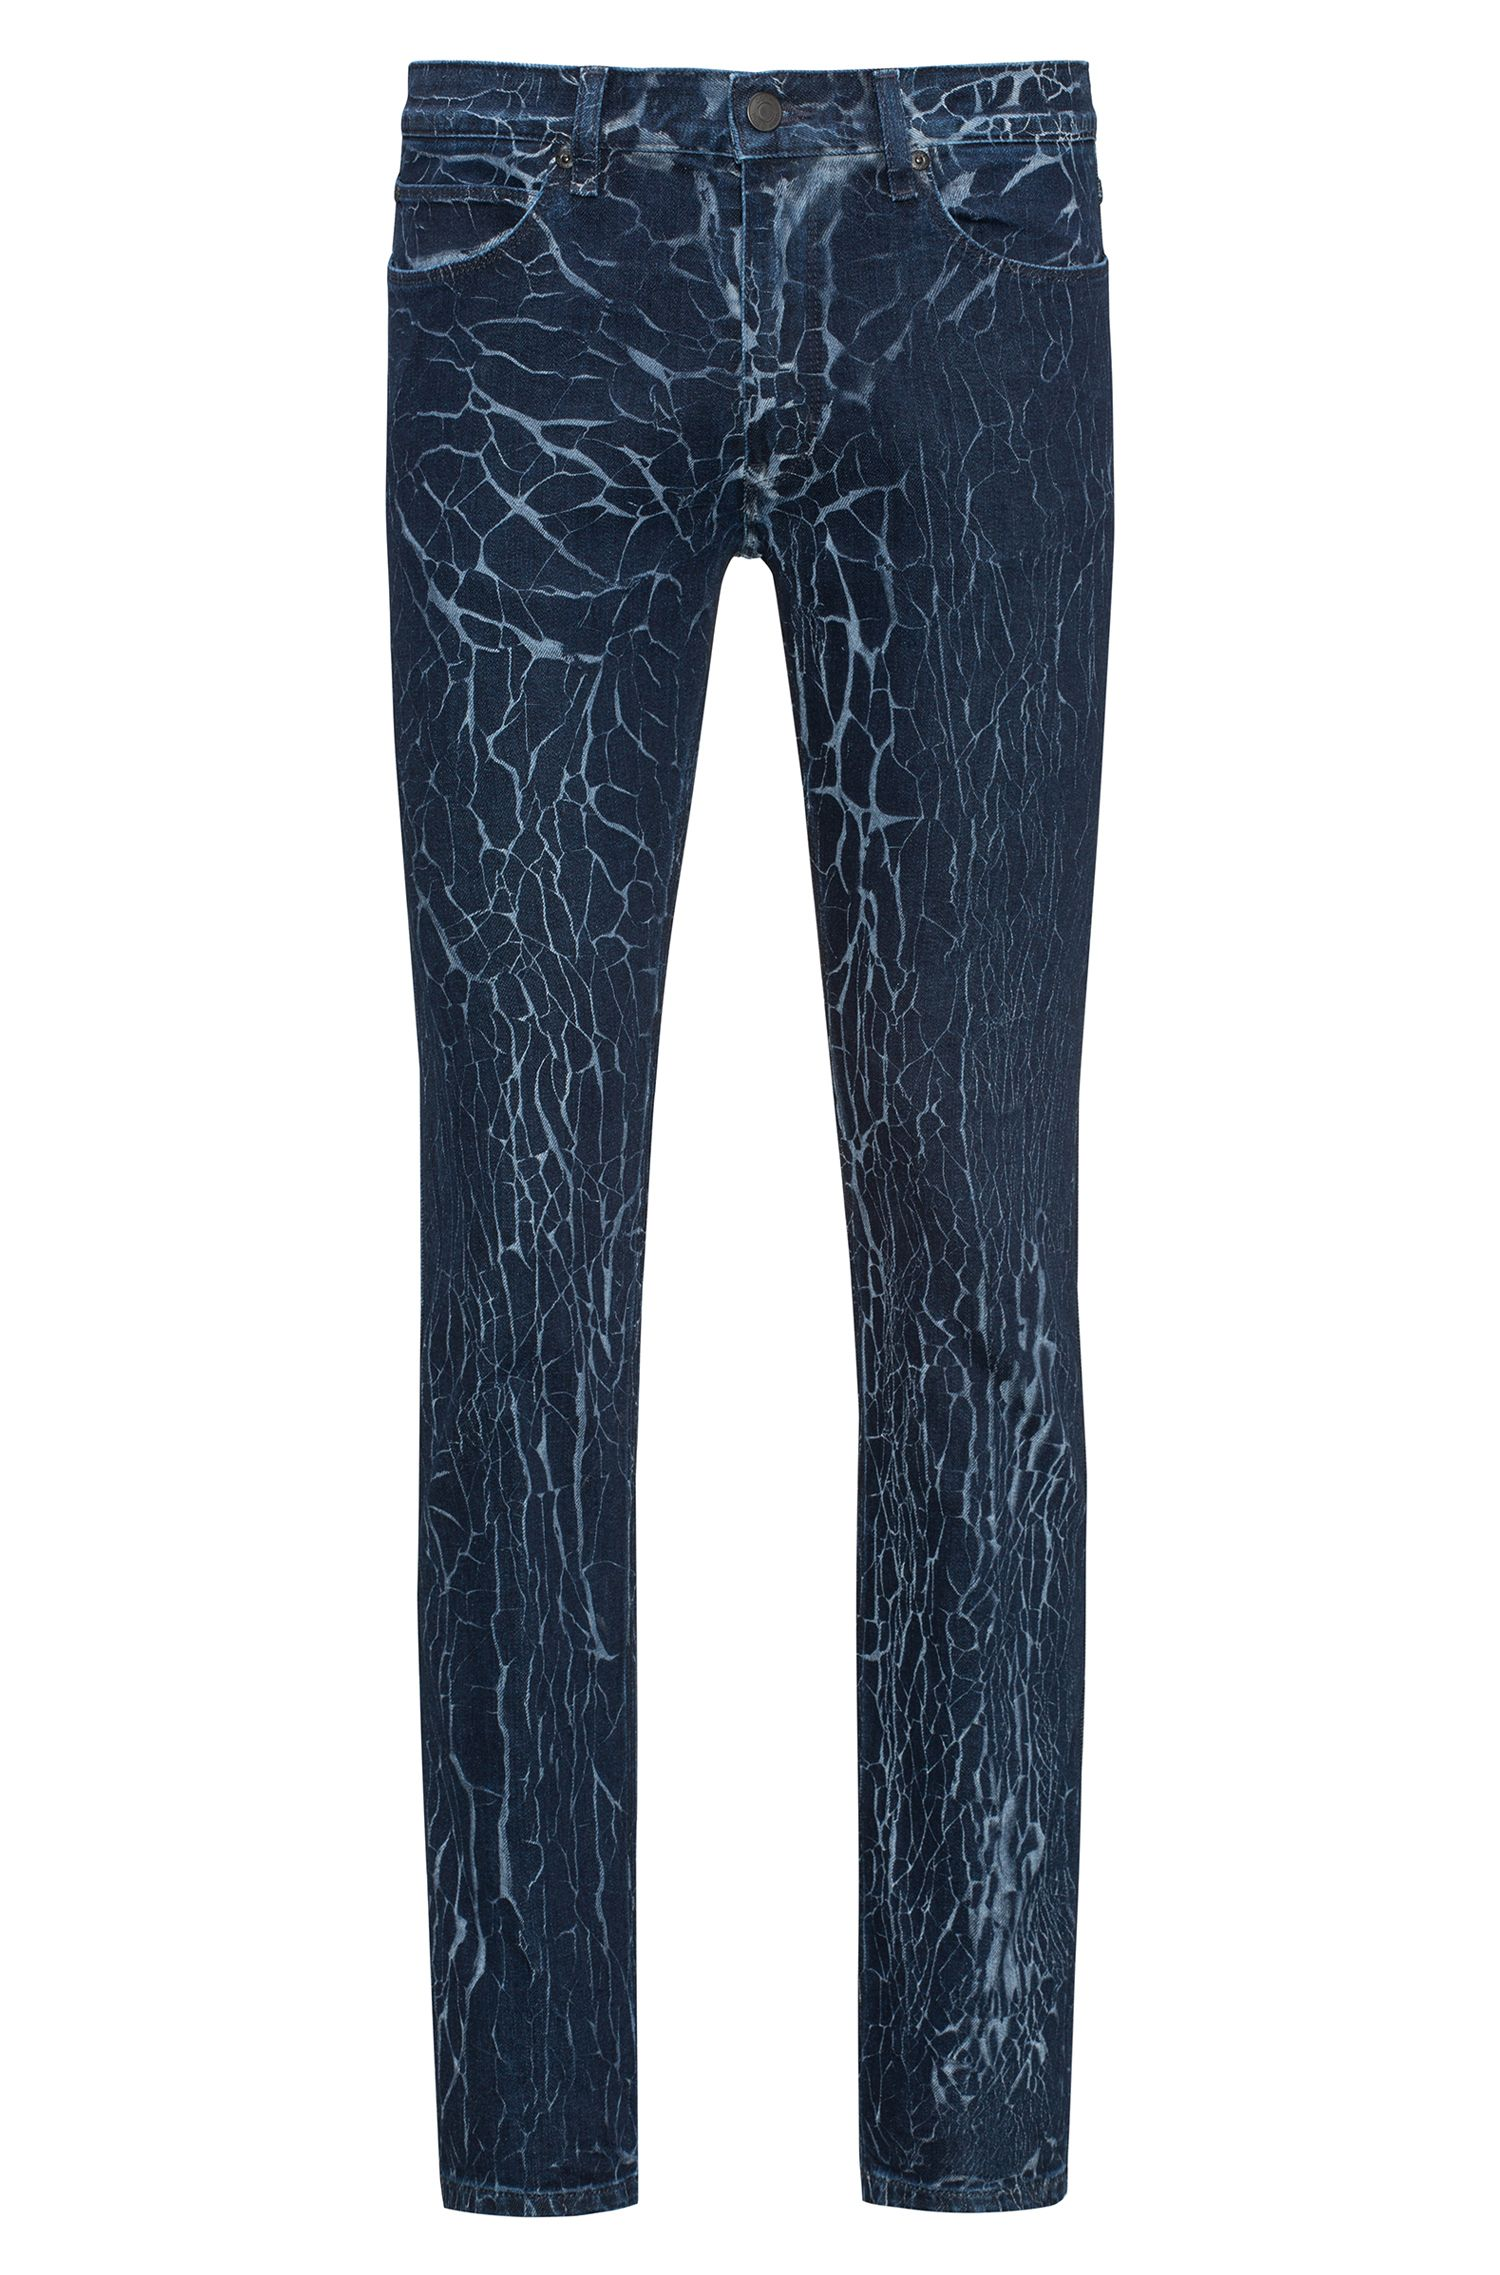 Skinny-Fit Jeans aus Stretch-Denim mit Krakelier-Effekt